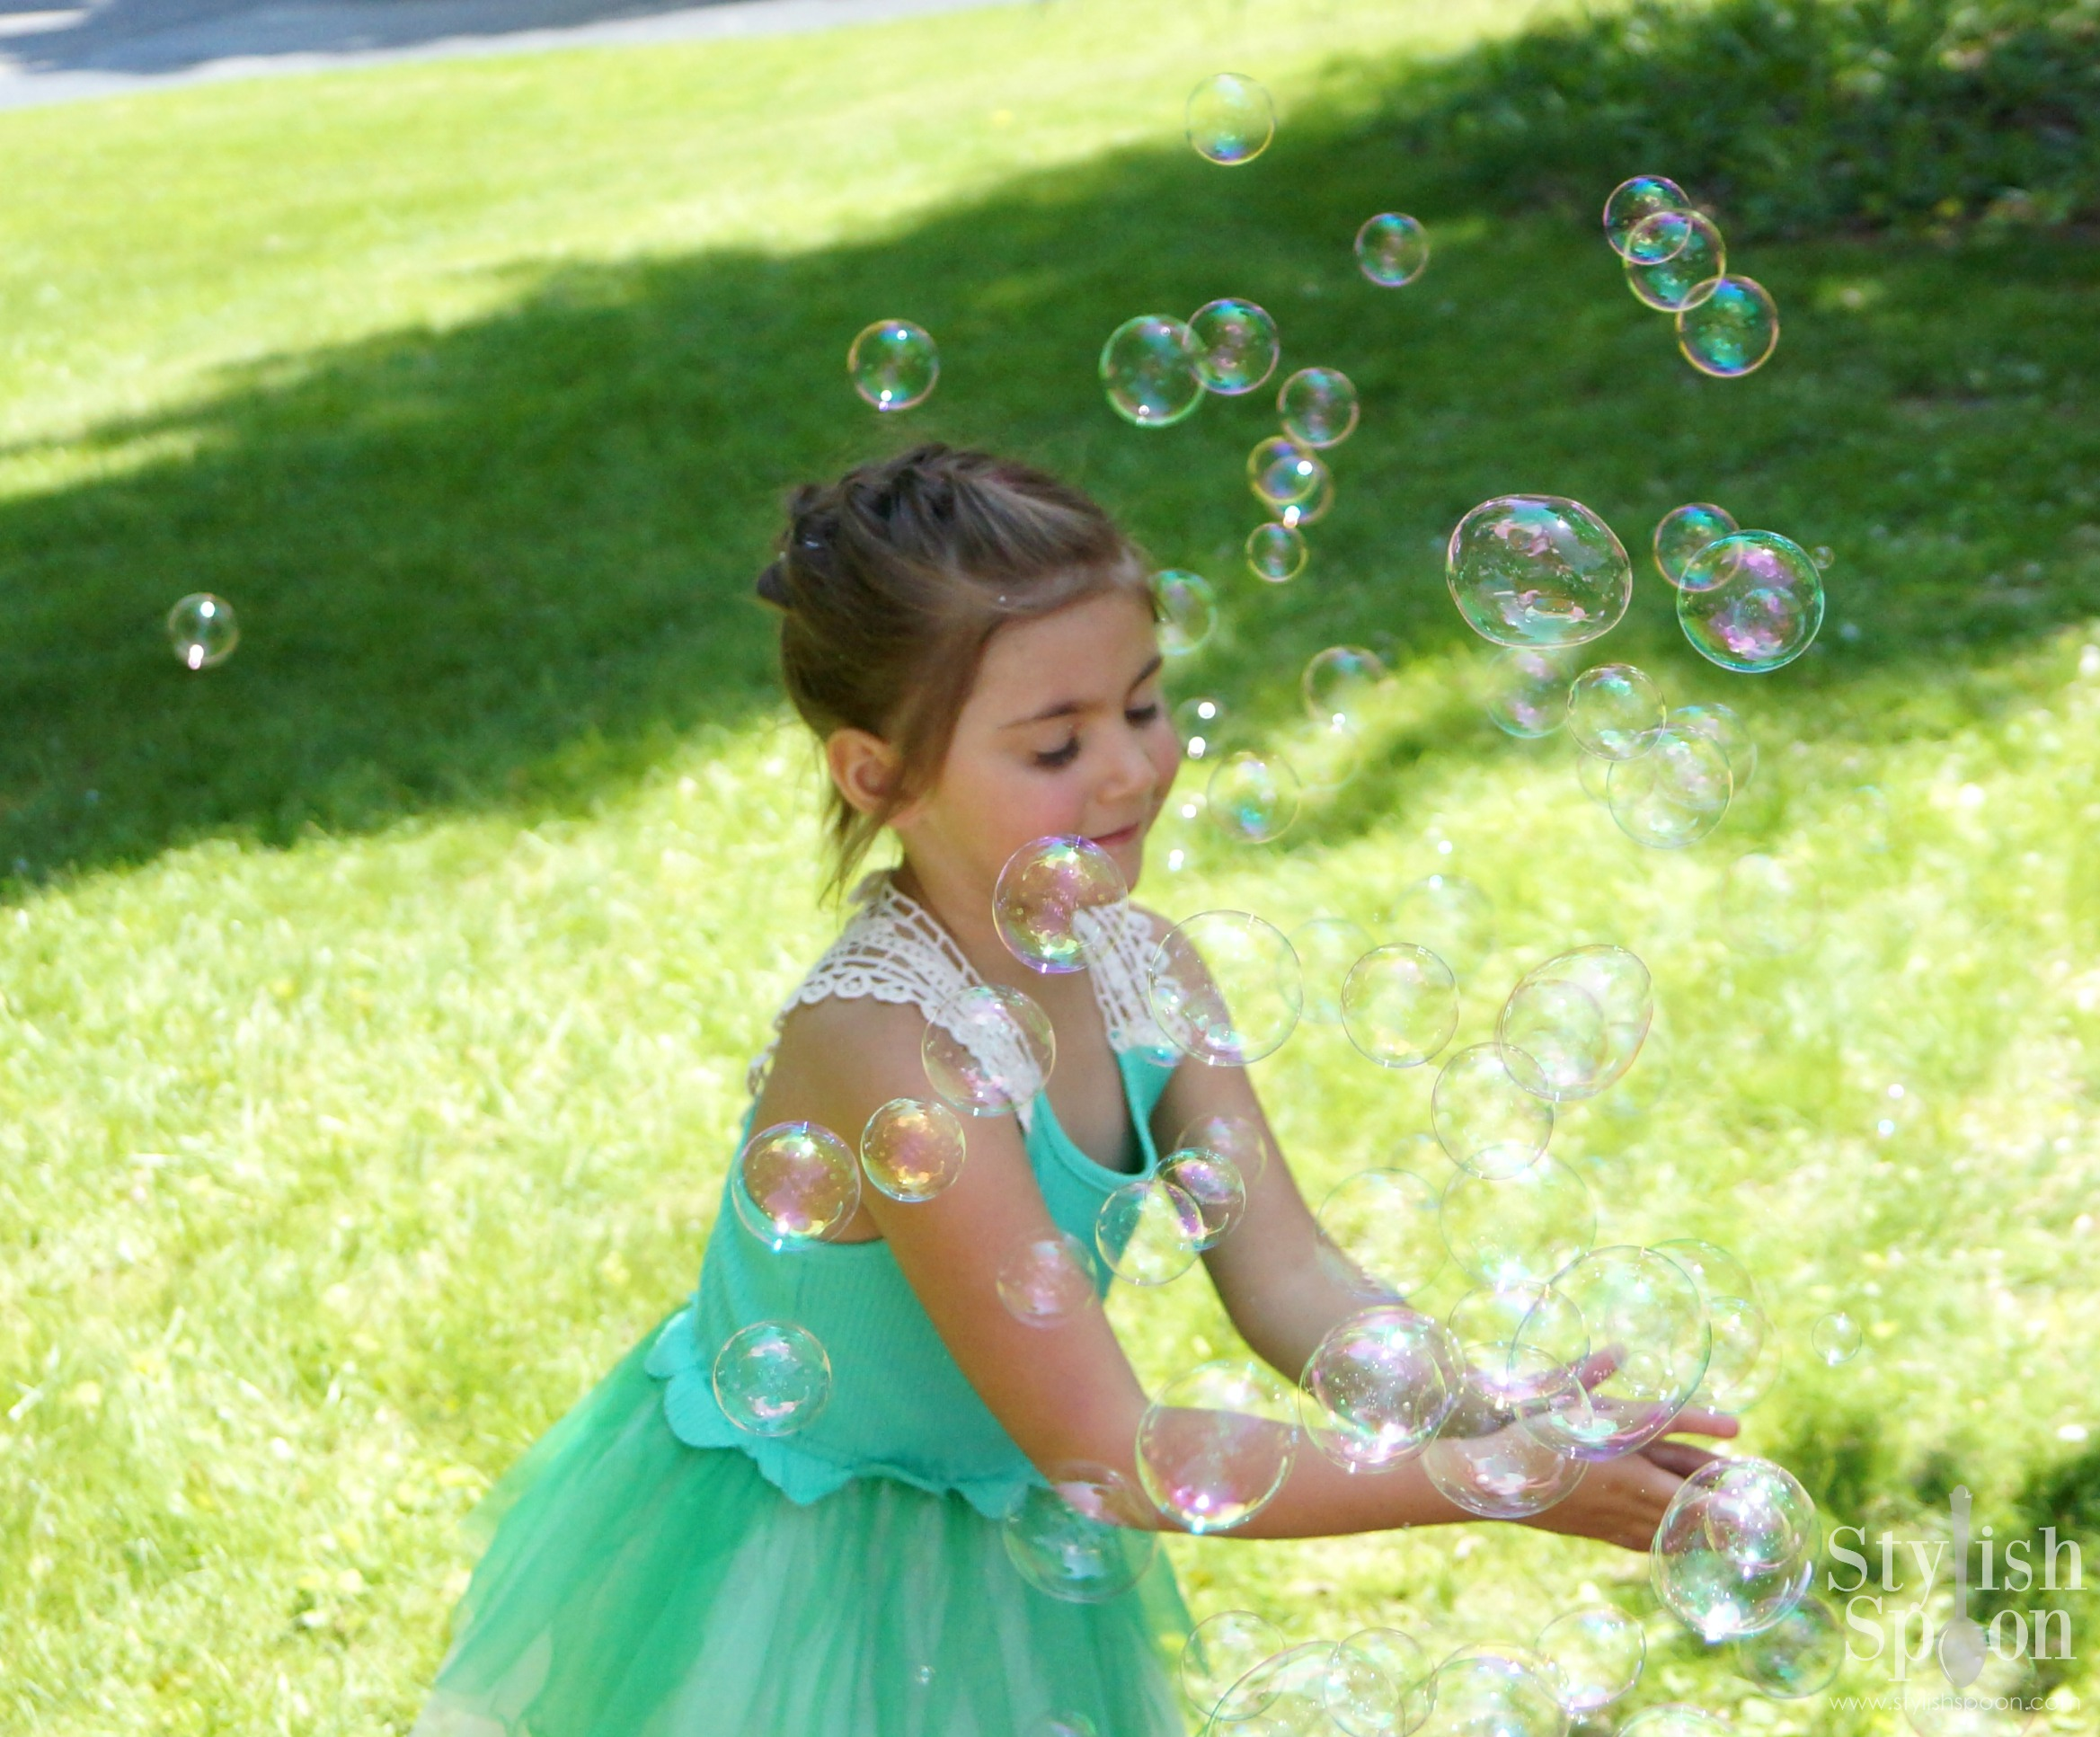 Kids Parties :: Pink Princess Birthday Party - Stylish Spoon